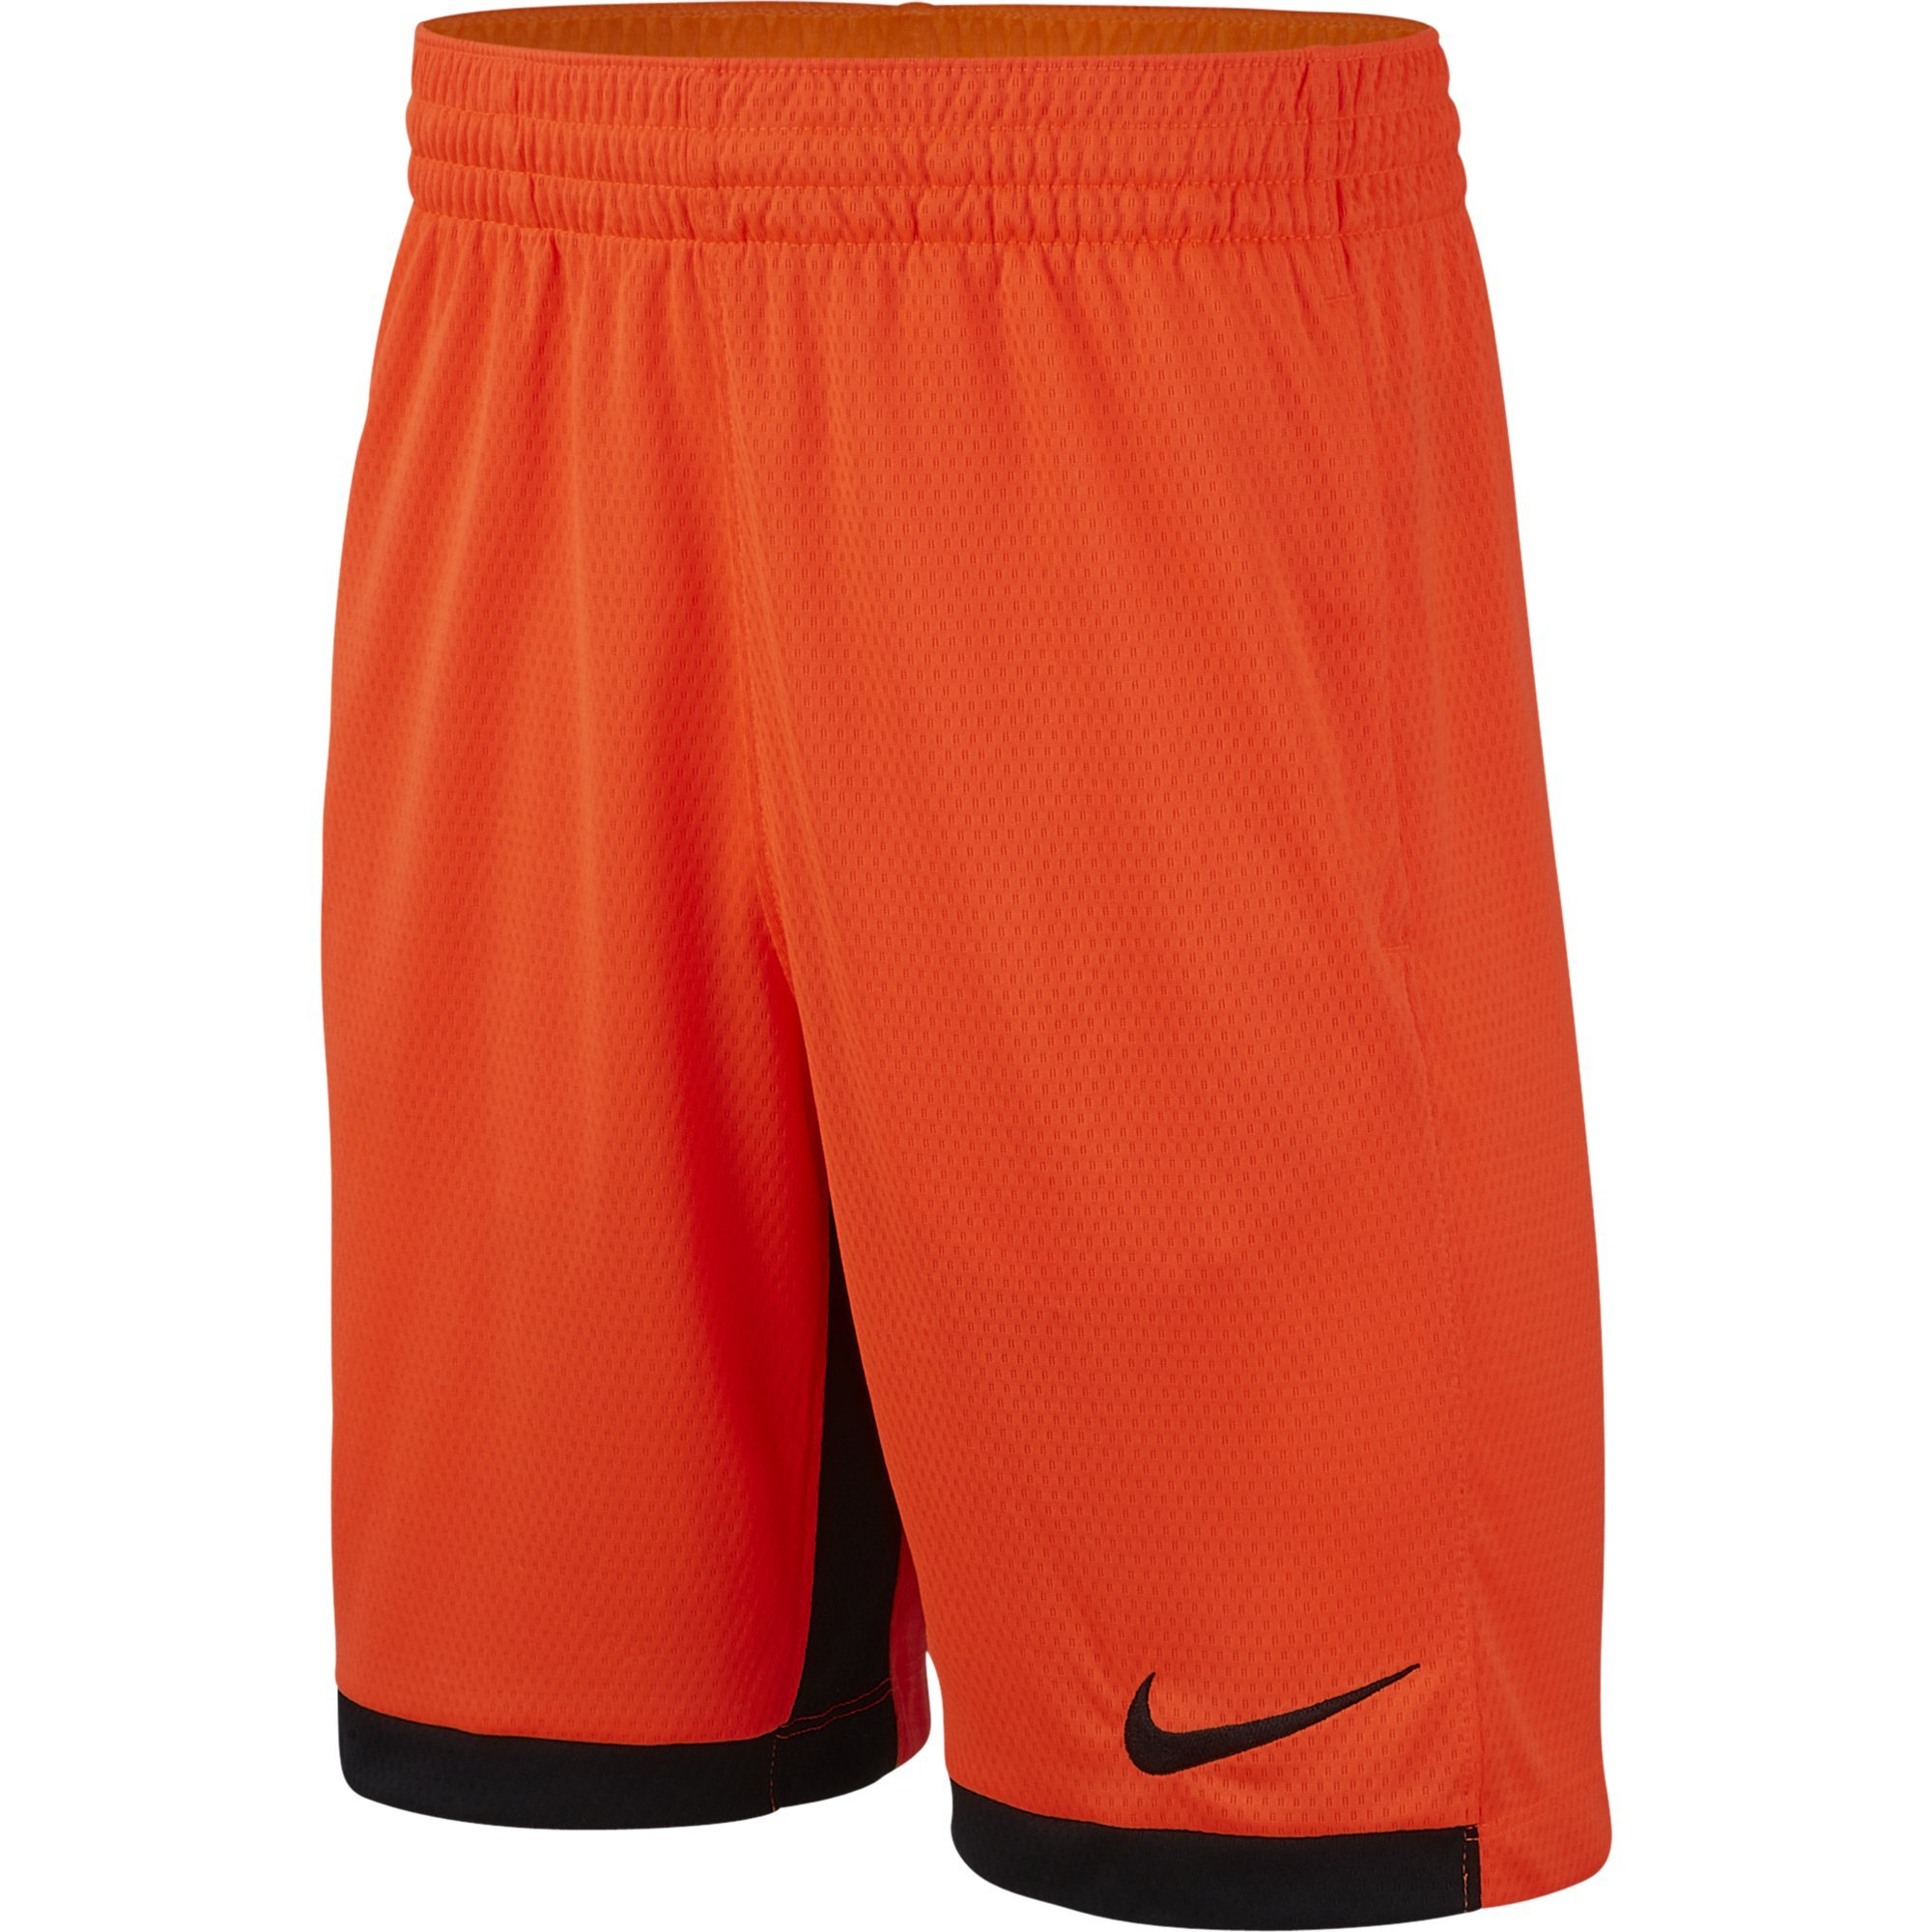 NIKE Boys' Dry Trophy Athletic Shorts, Hyper Crimson/Black/Black, X-Small